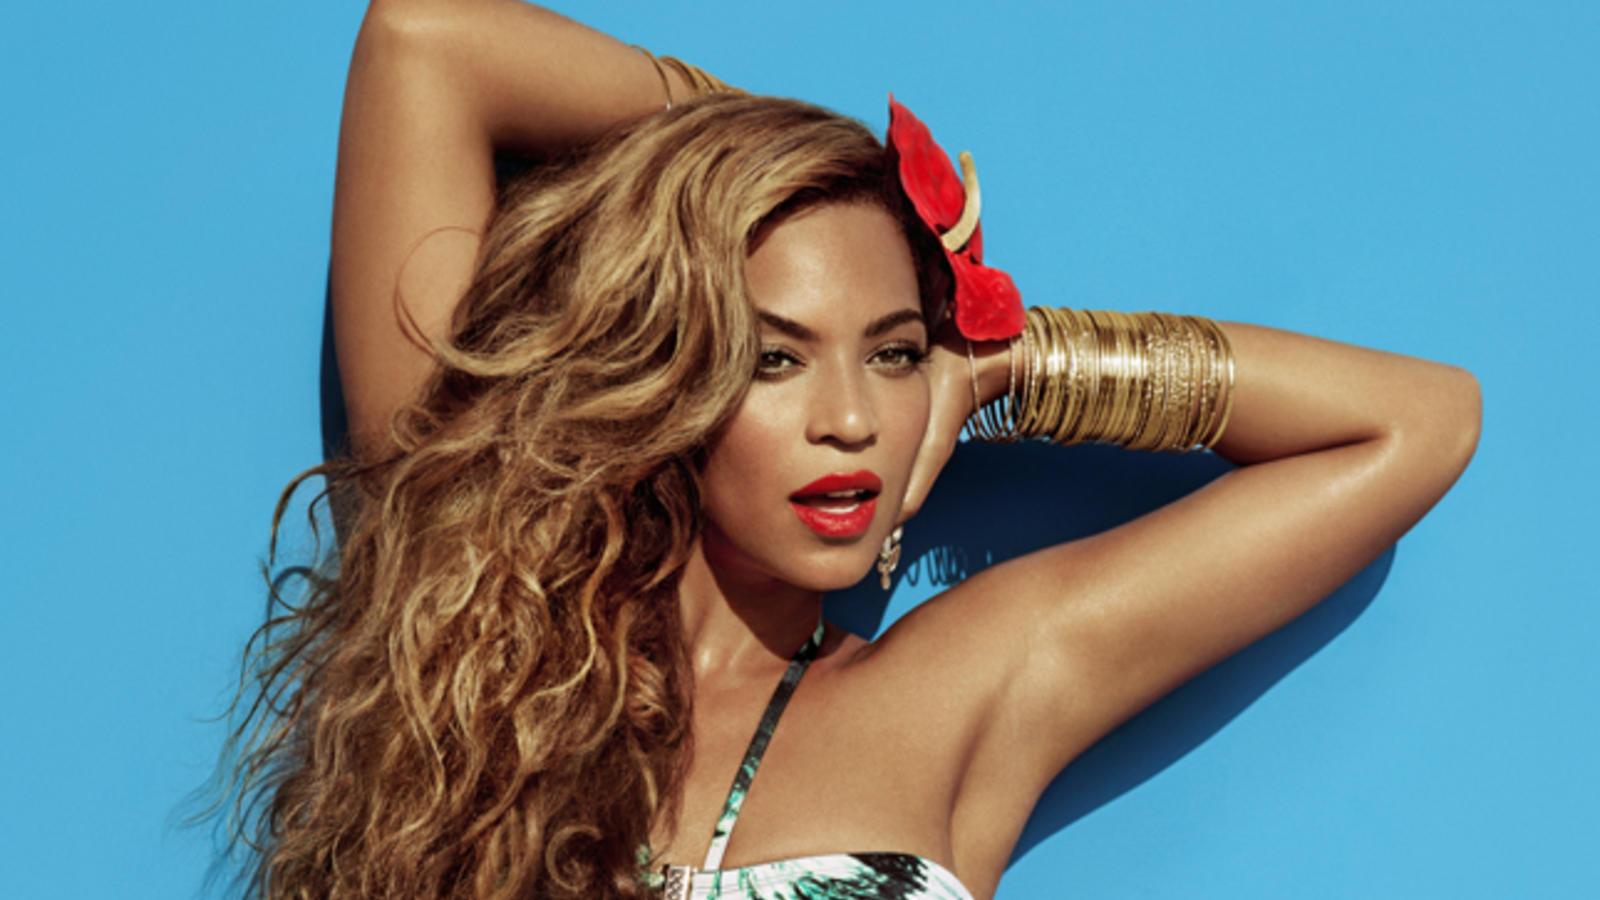 Singer and actress Beyoncé Knowles-Carter models the H&M for Water Collection.